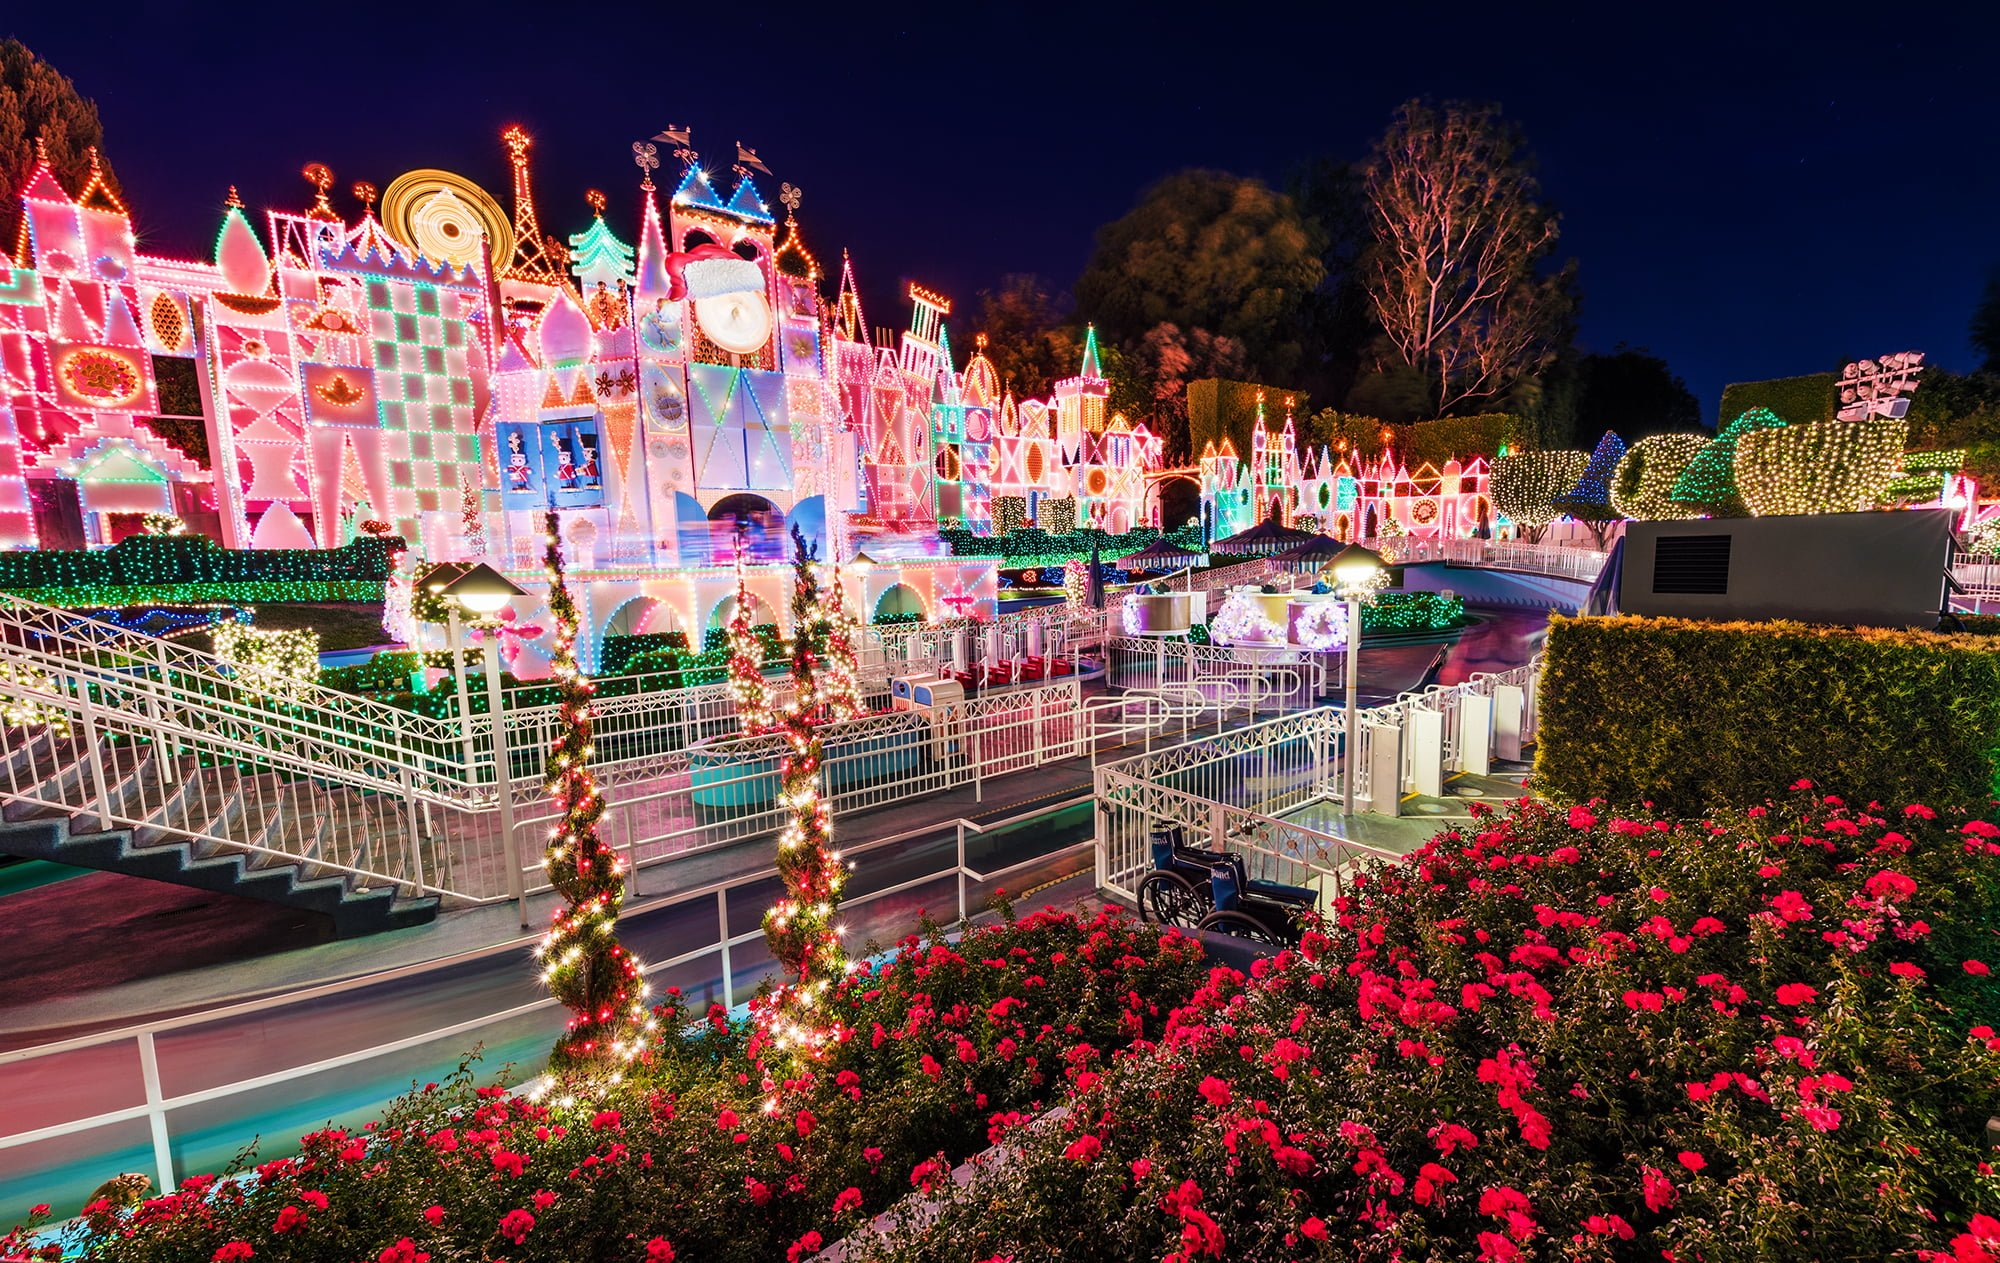 Christmas decoration all around the world - Small World Holiday Exterior Disneyland Flowers Copy